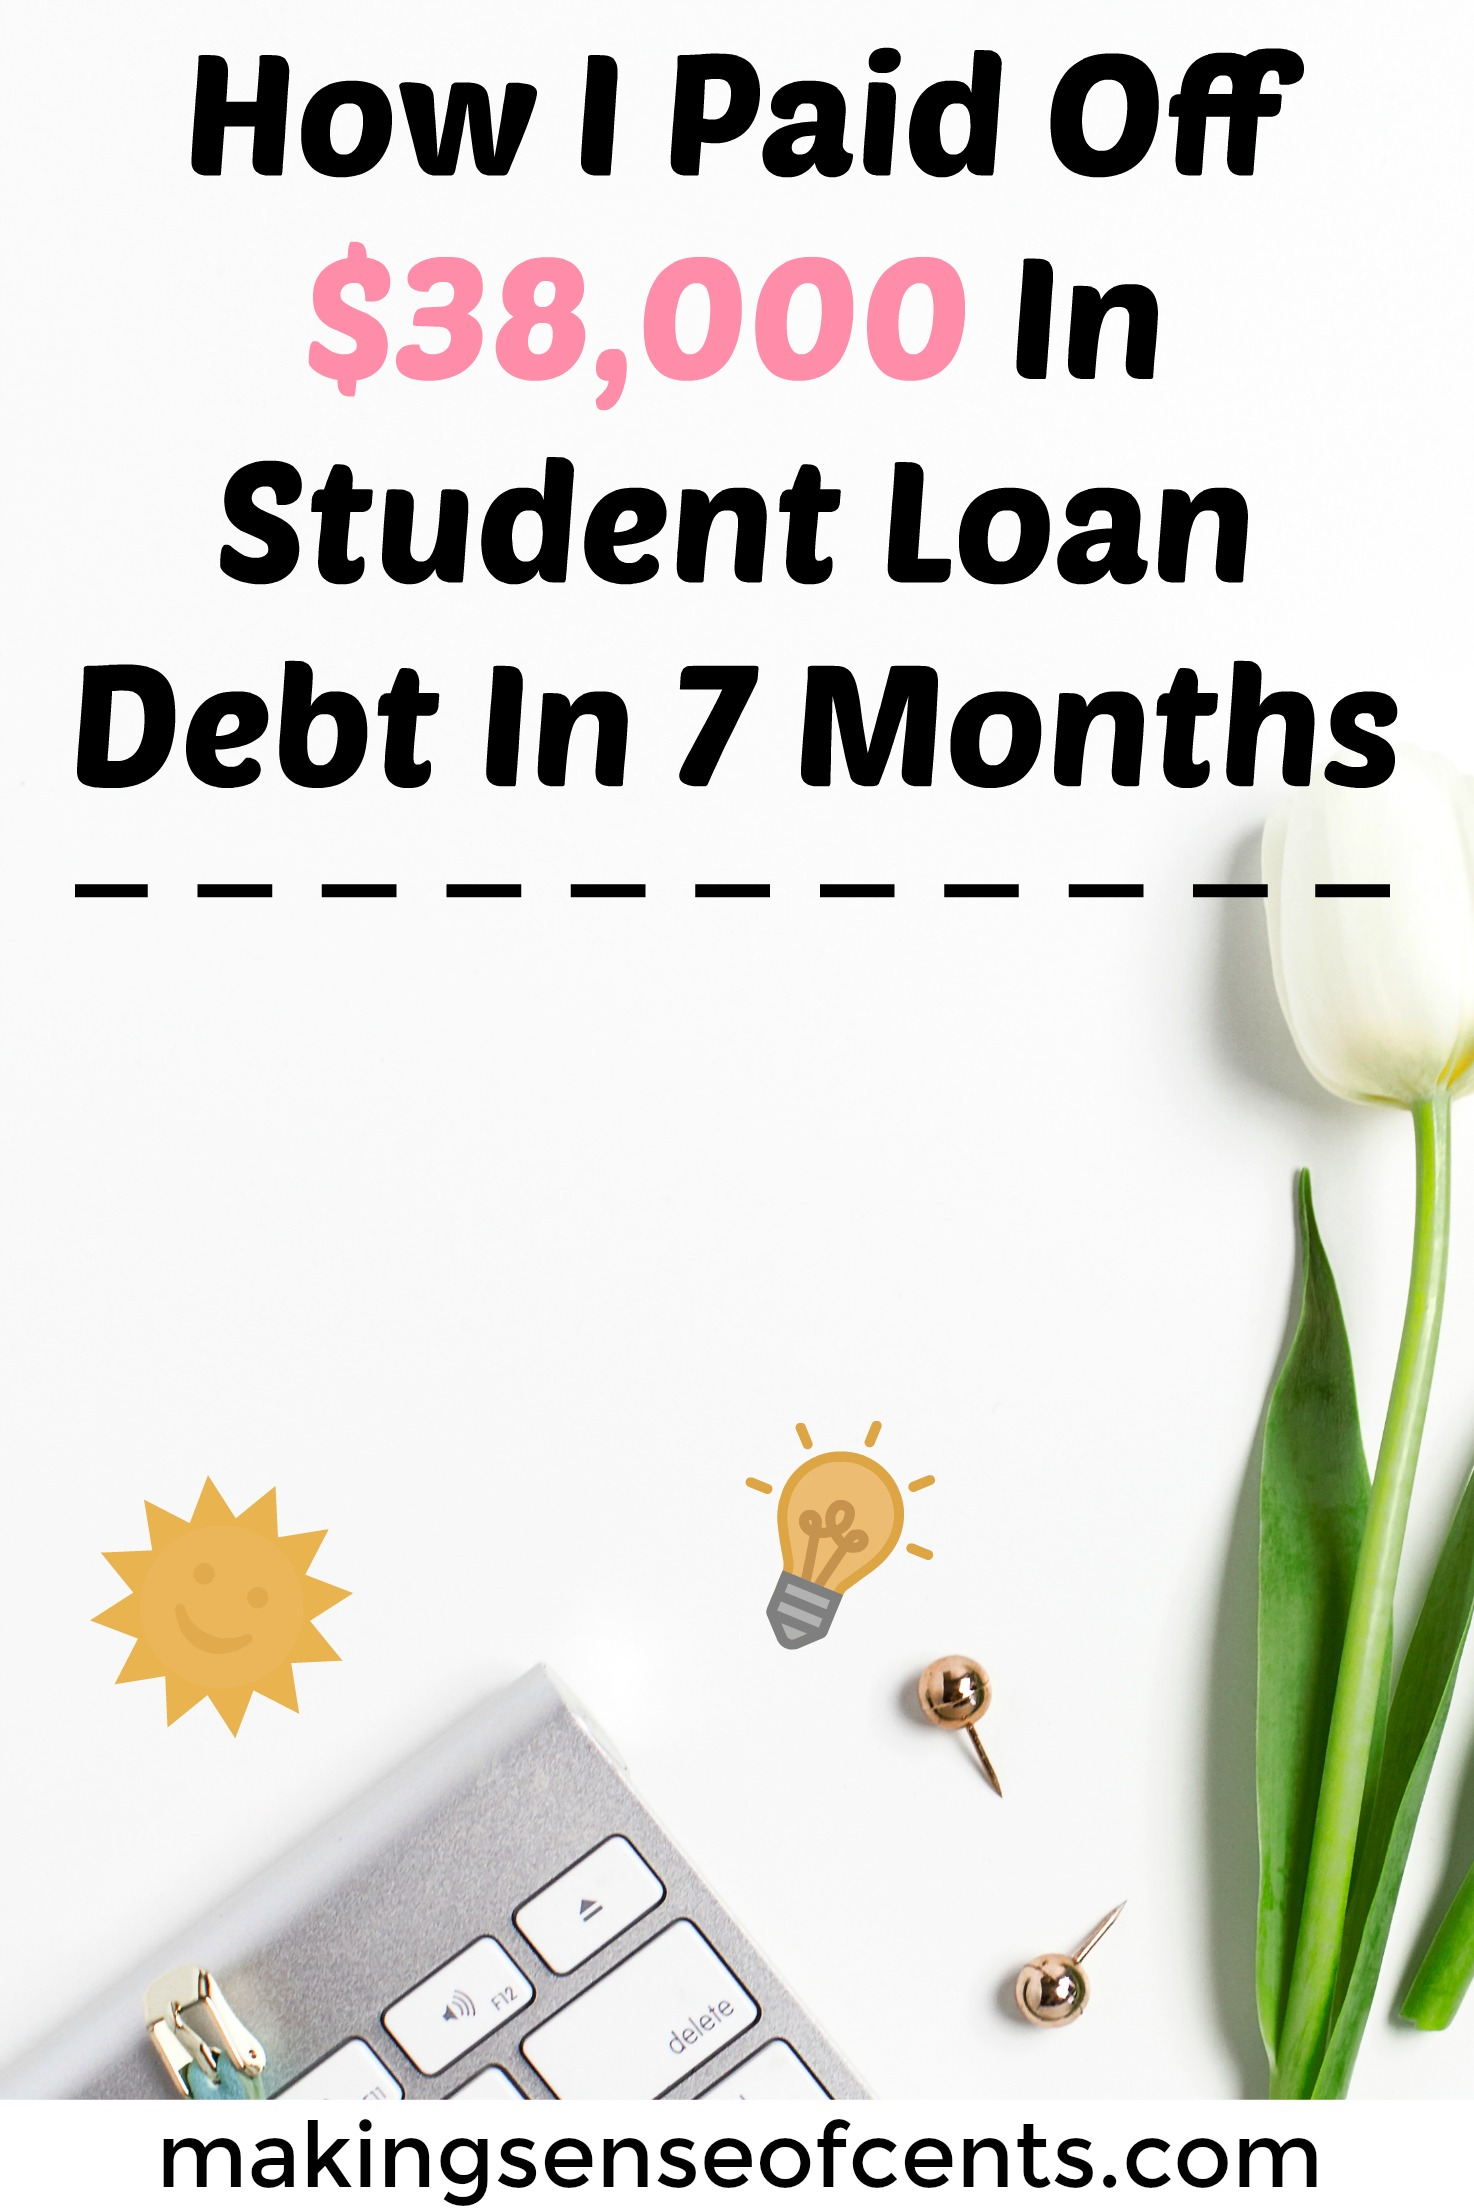 How I Paid Off $38,000 In Student Loan Debt In 7 Months